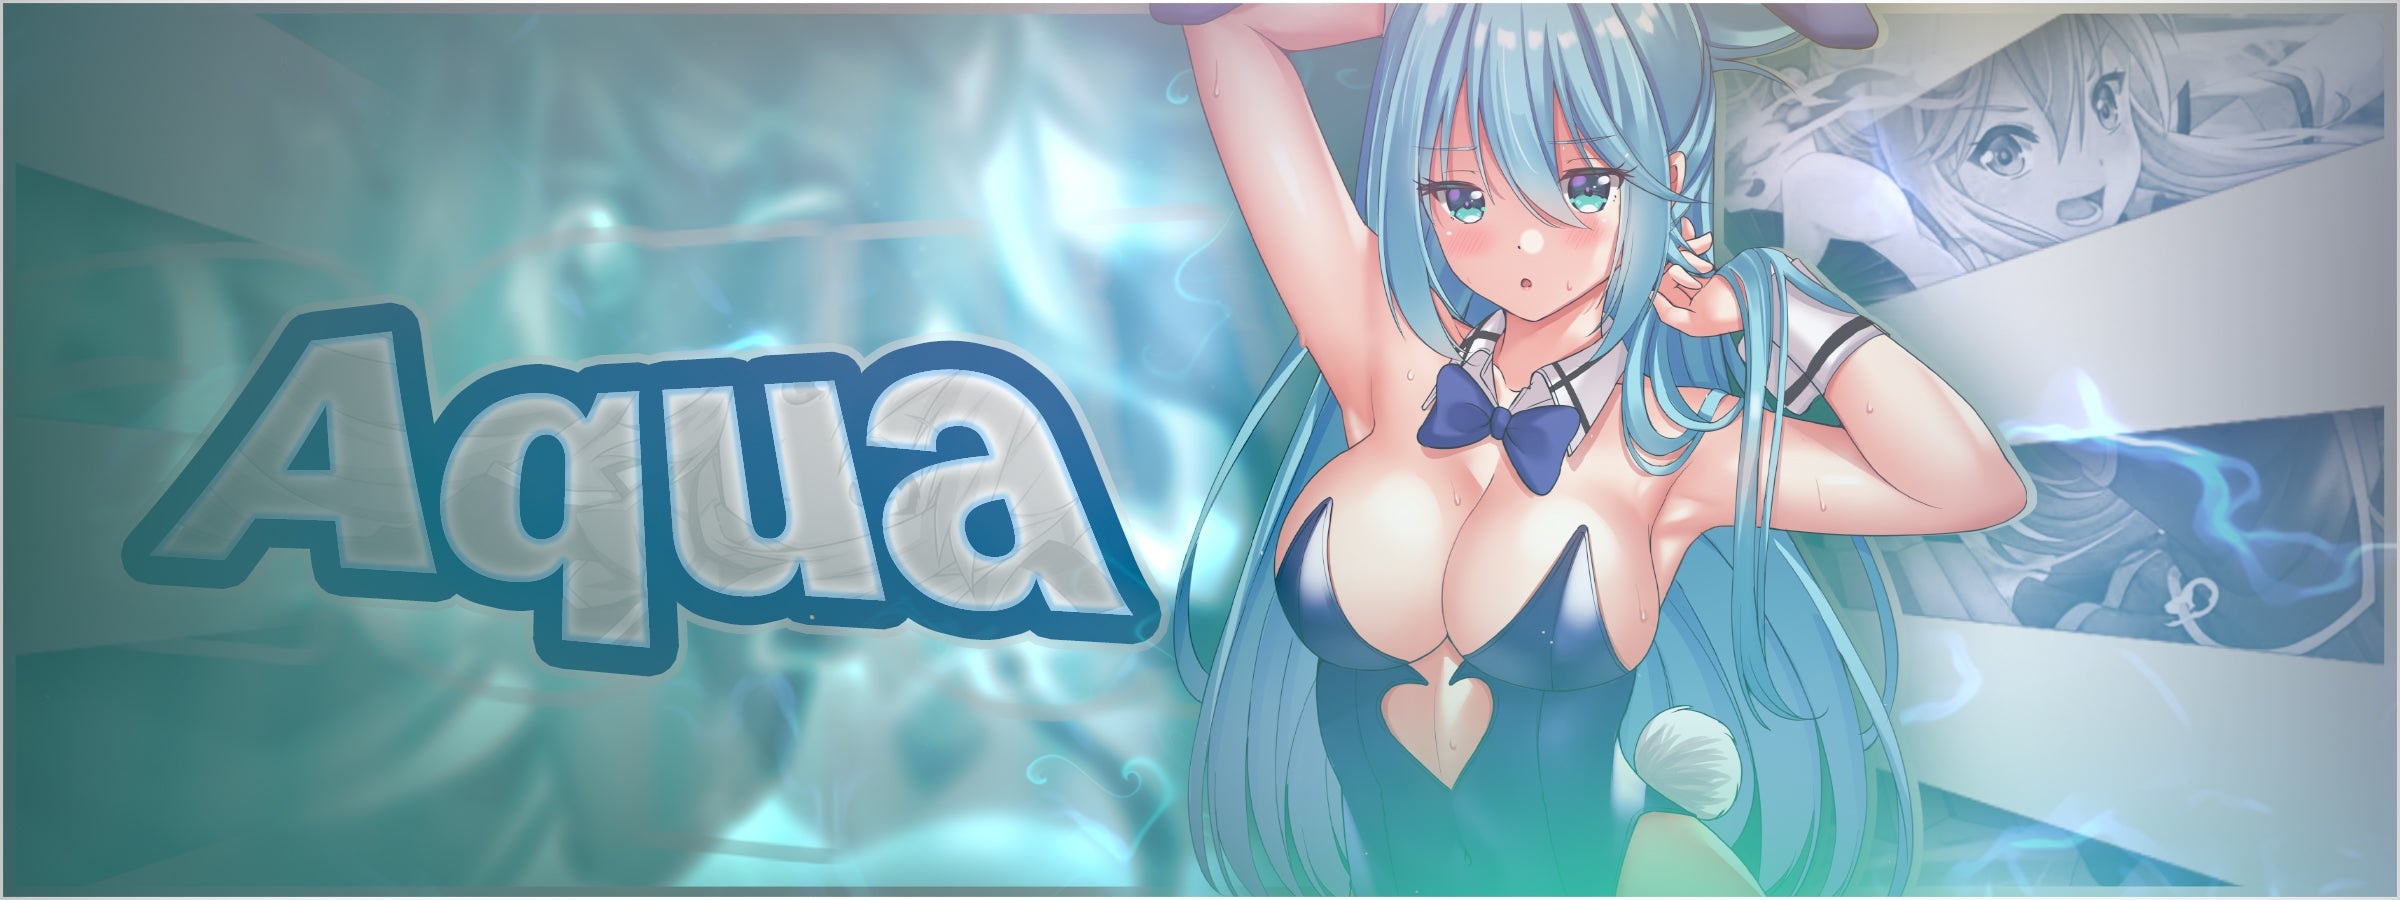 Aqua - Slap - Holographic